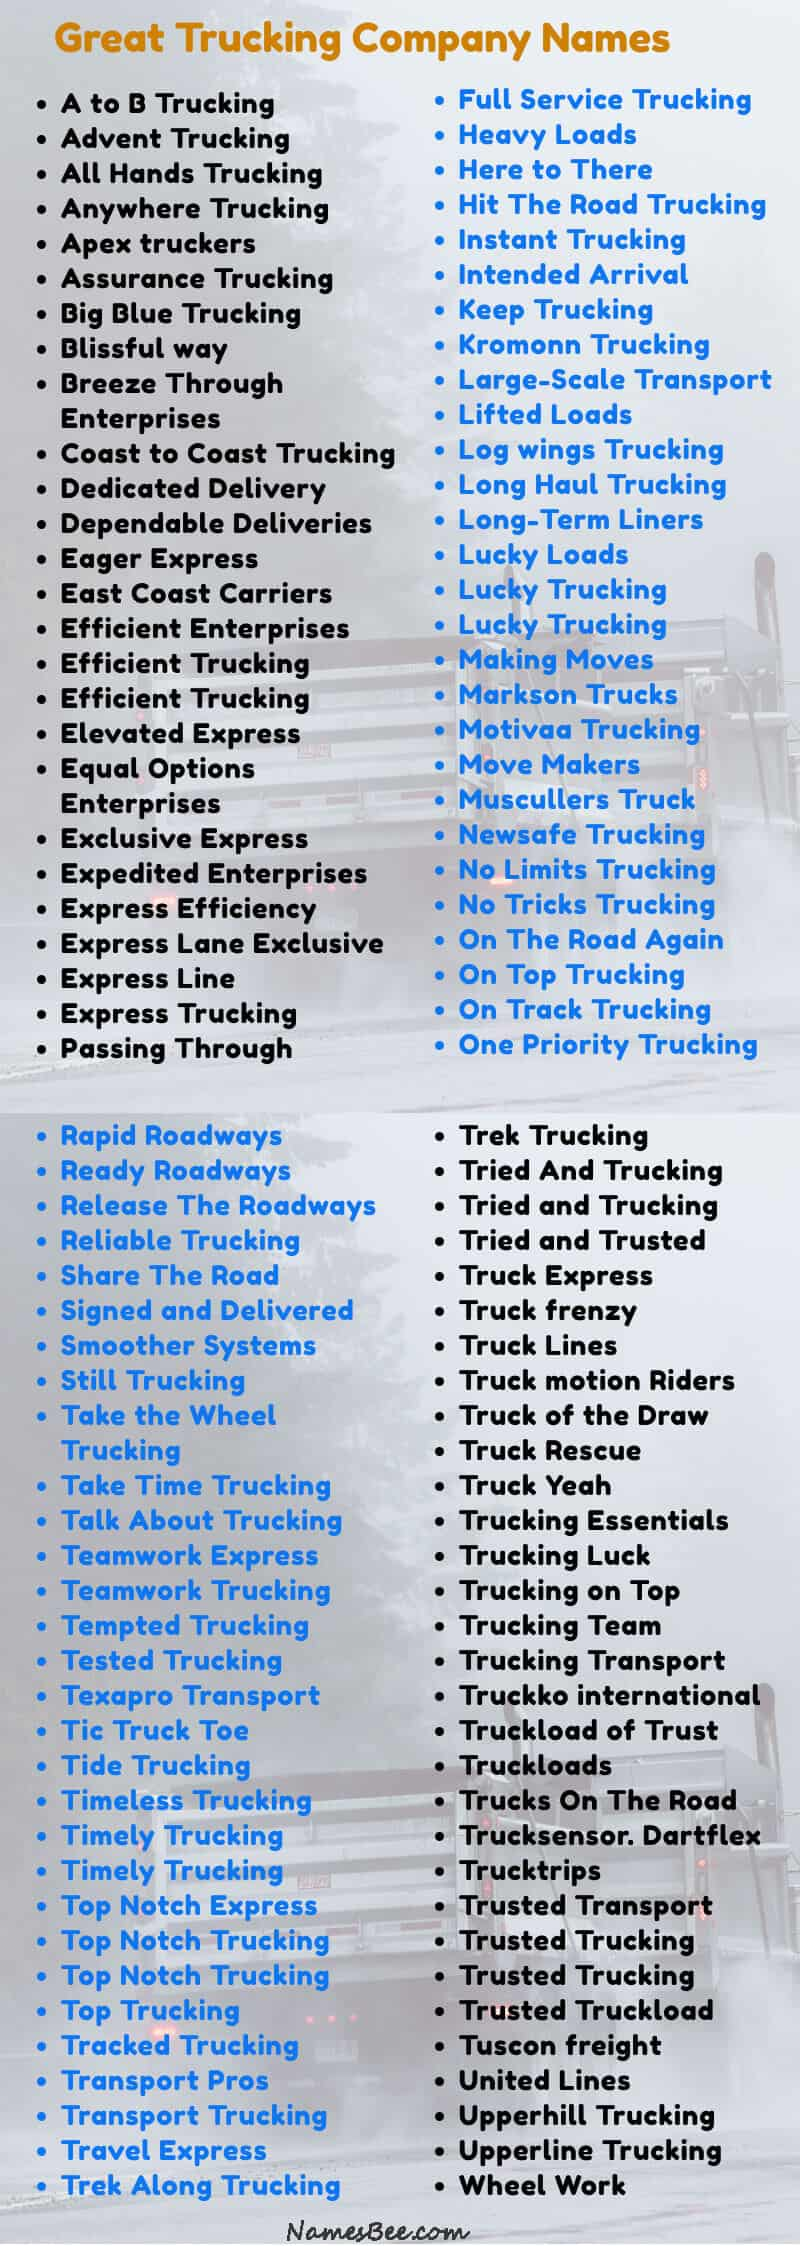 These are the trucking company names available